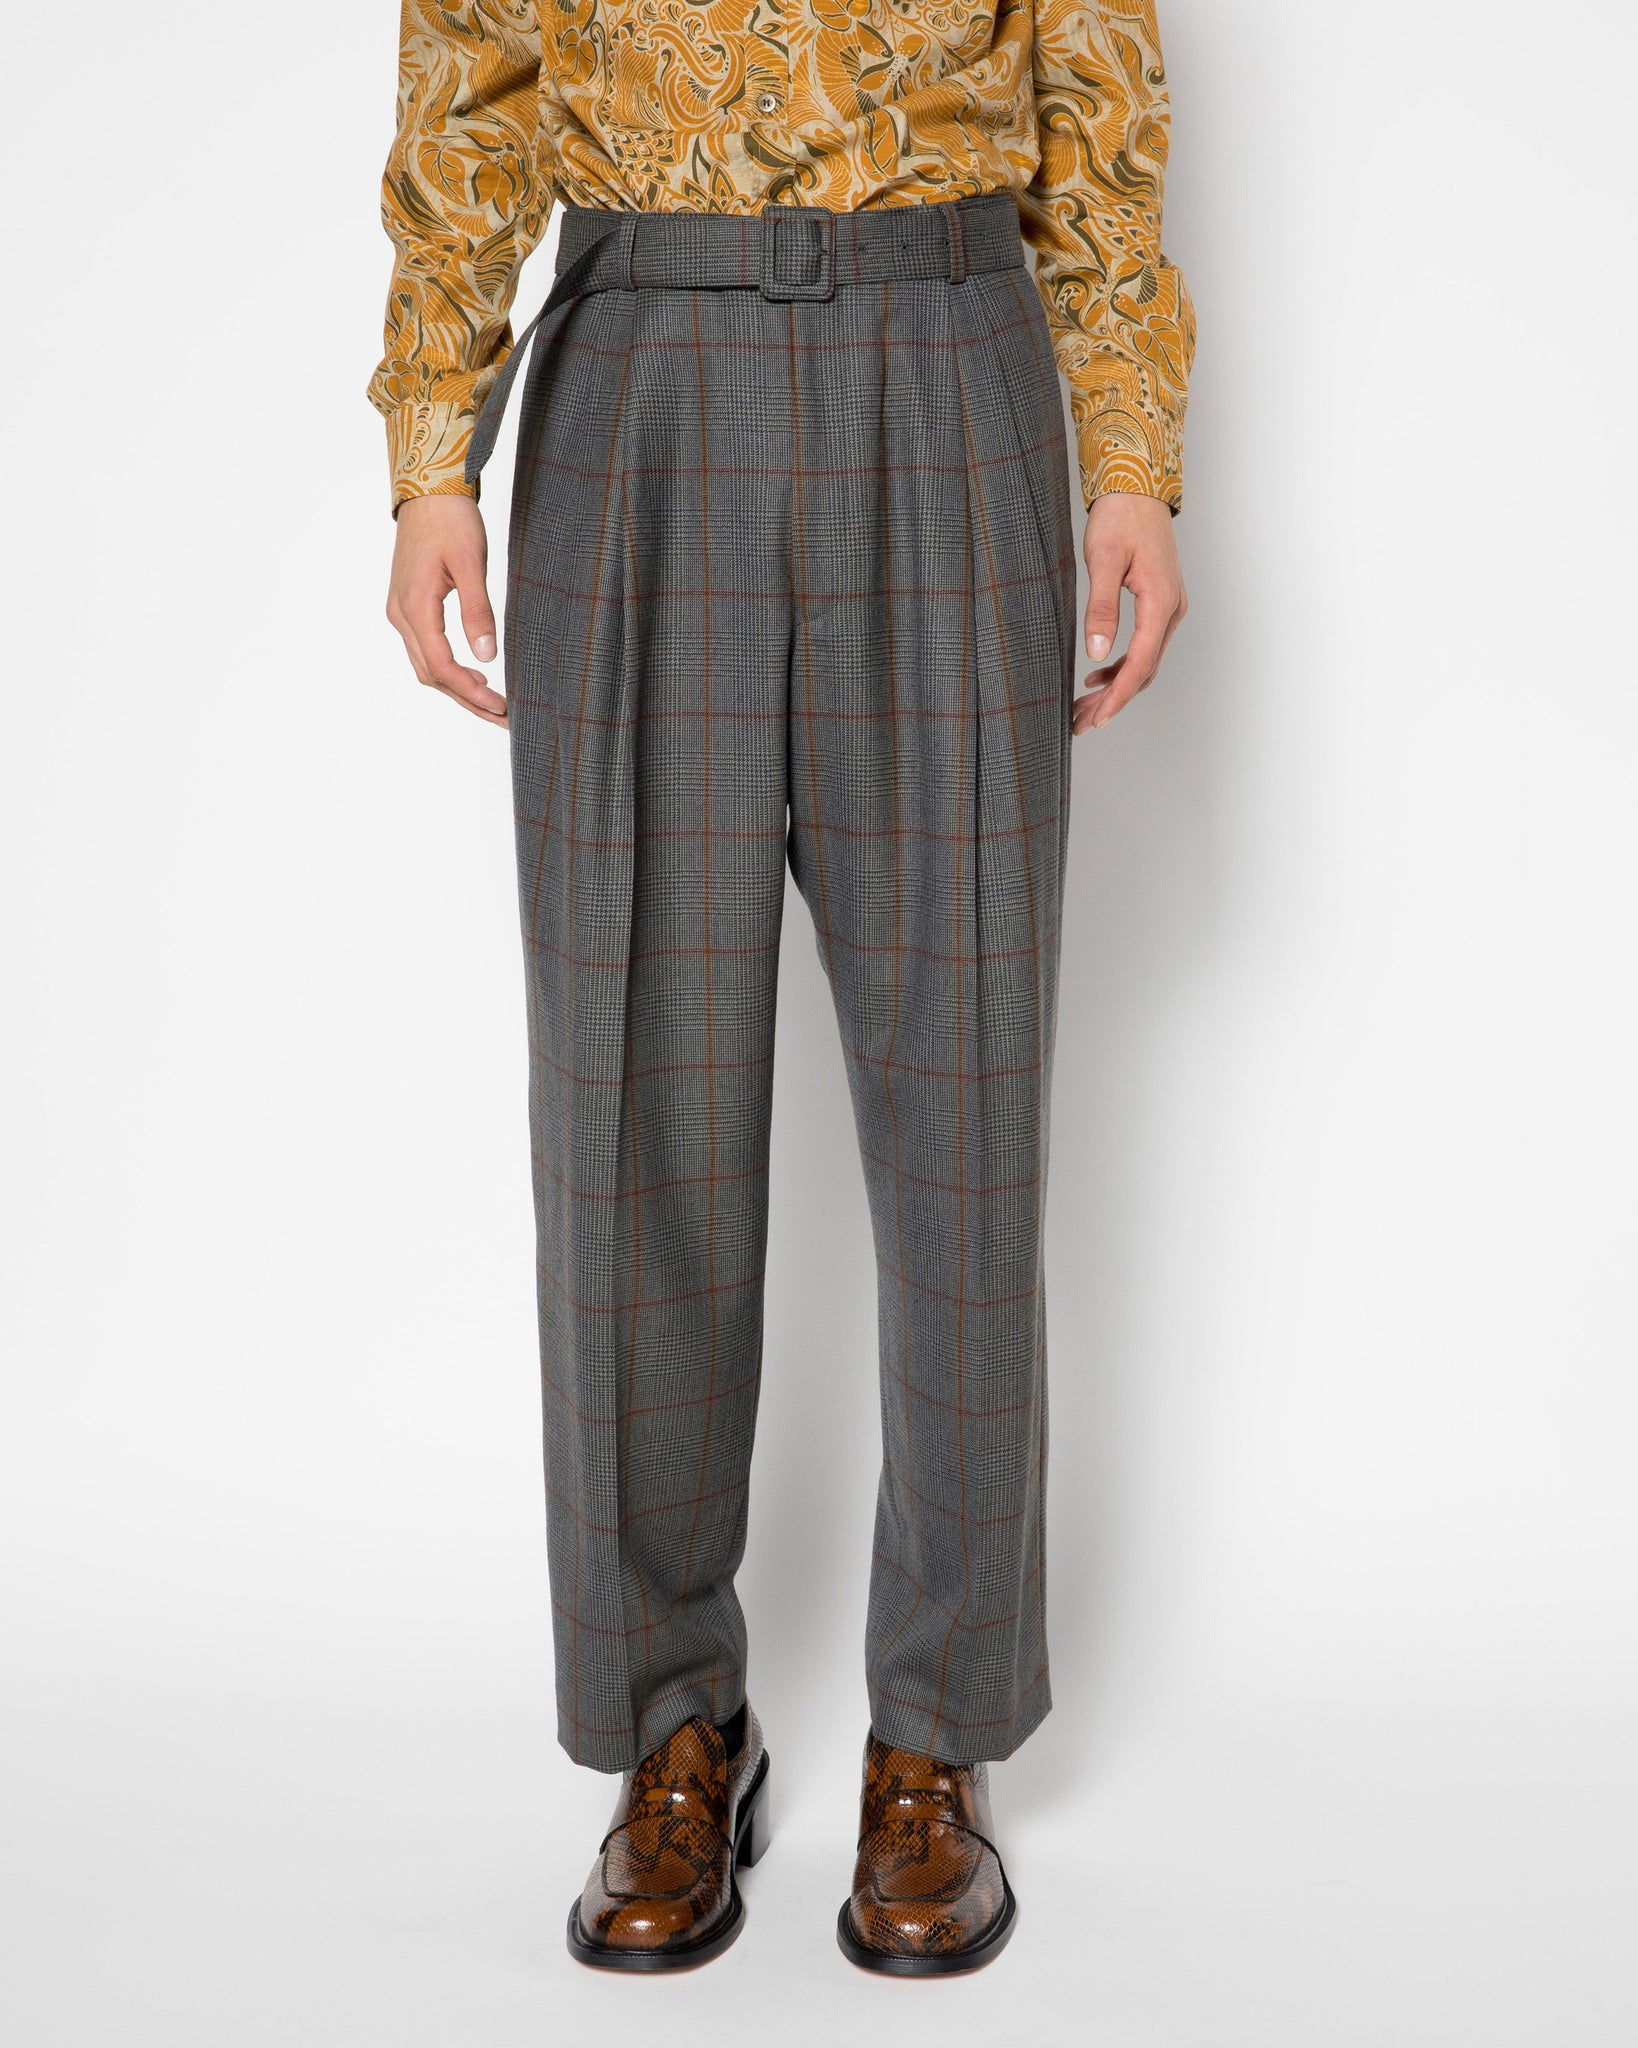 PHOENIX BIS pleated trouser